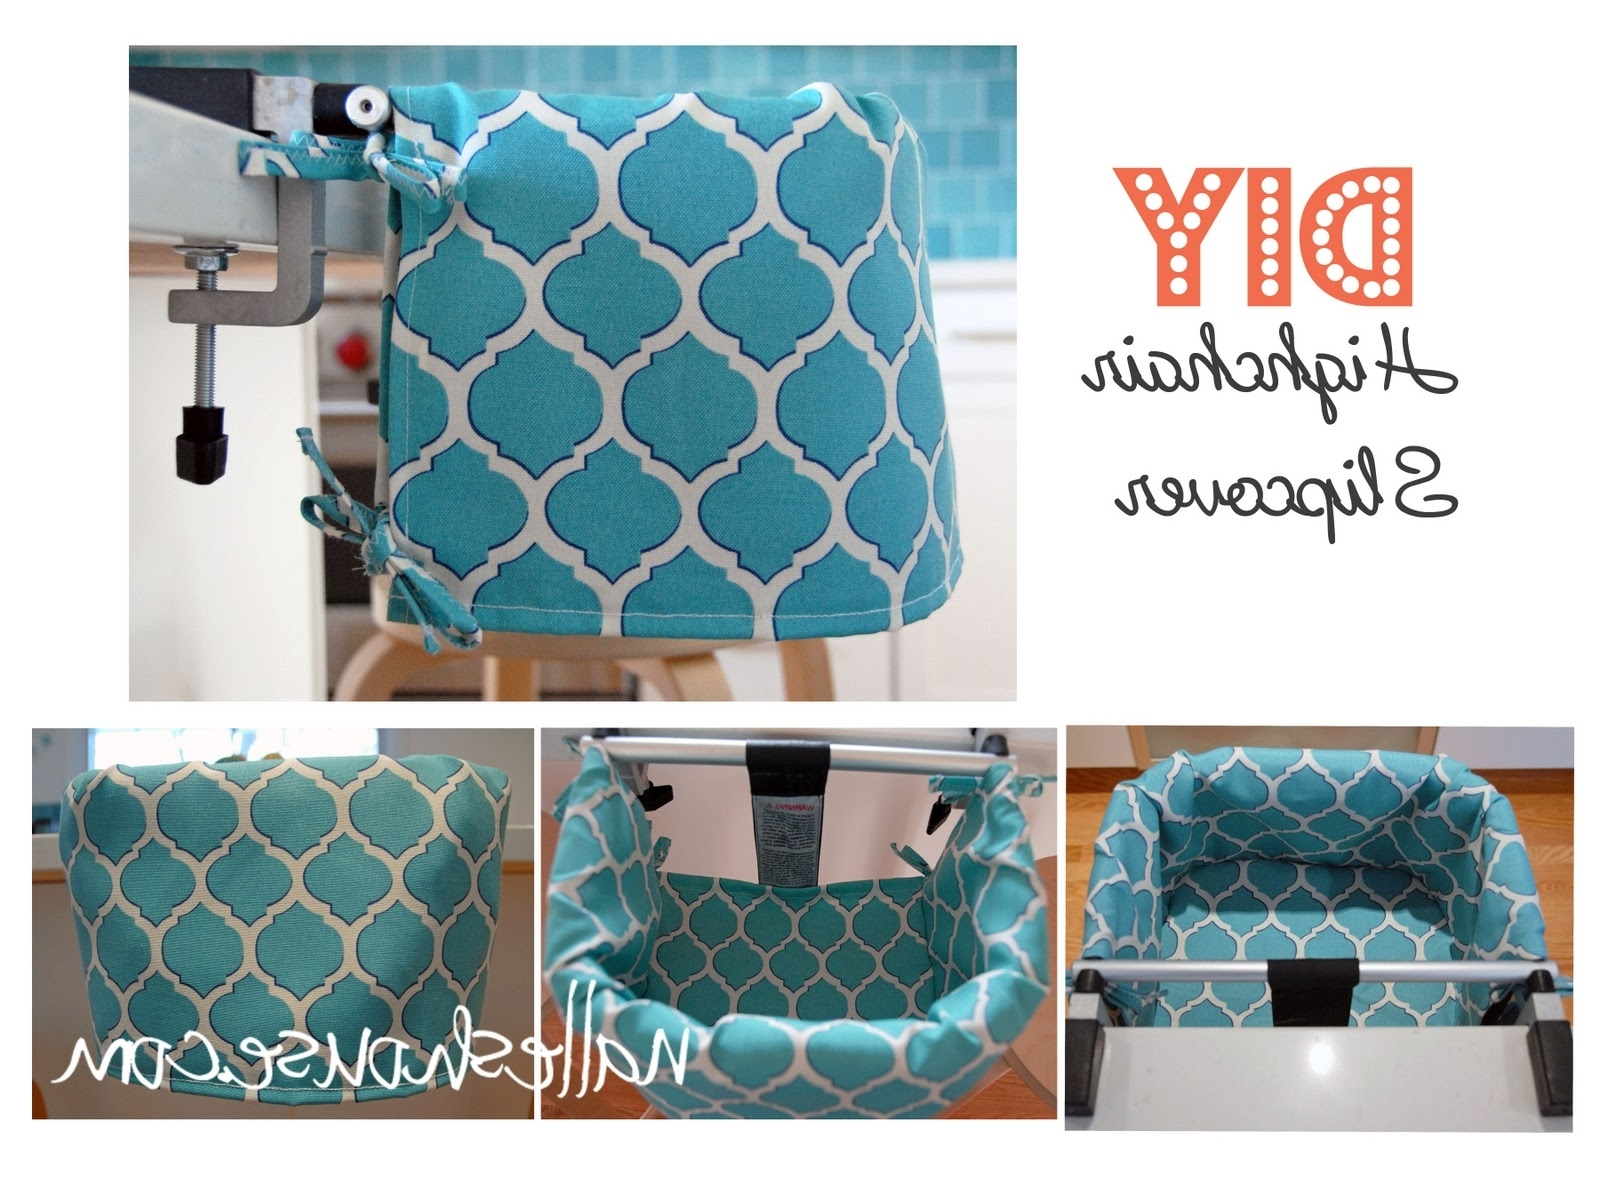 Wyatt 6 Piece Dining Sets With Celler Teal Chairs Regarding 2017 Nalle's House: Highchair Slipcover How To (View 18 of 25)